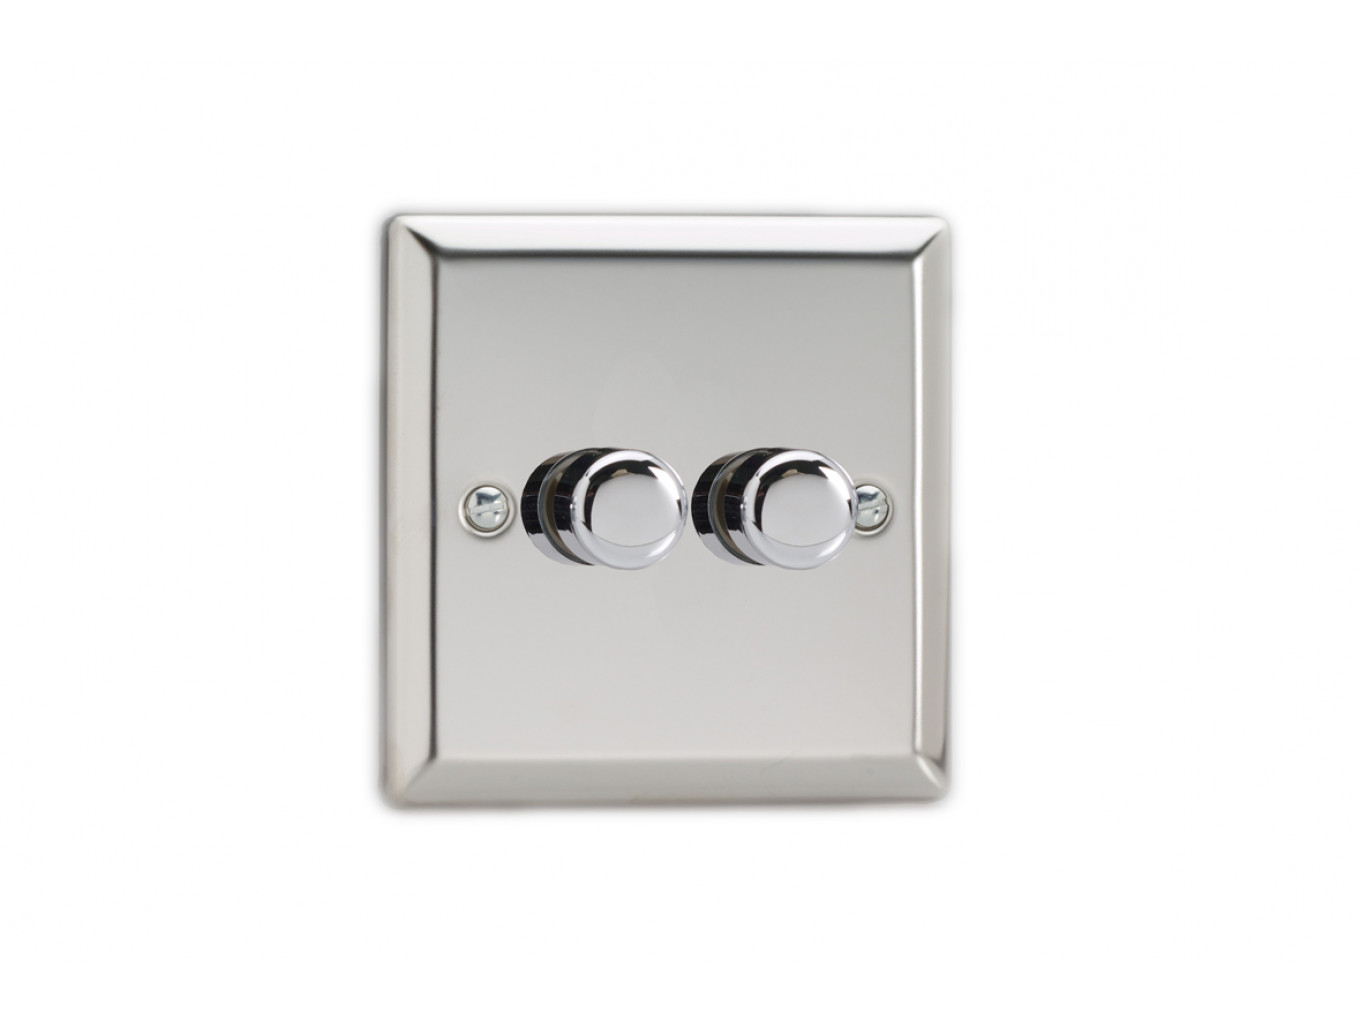 Varilight Double Chrome dimmer switch 2 way - LED Dimmable - Light ...